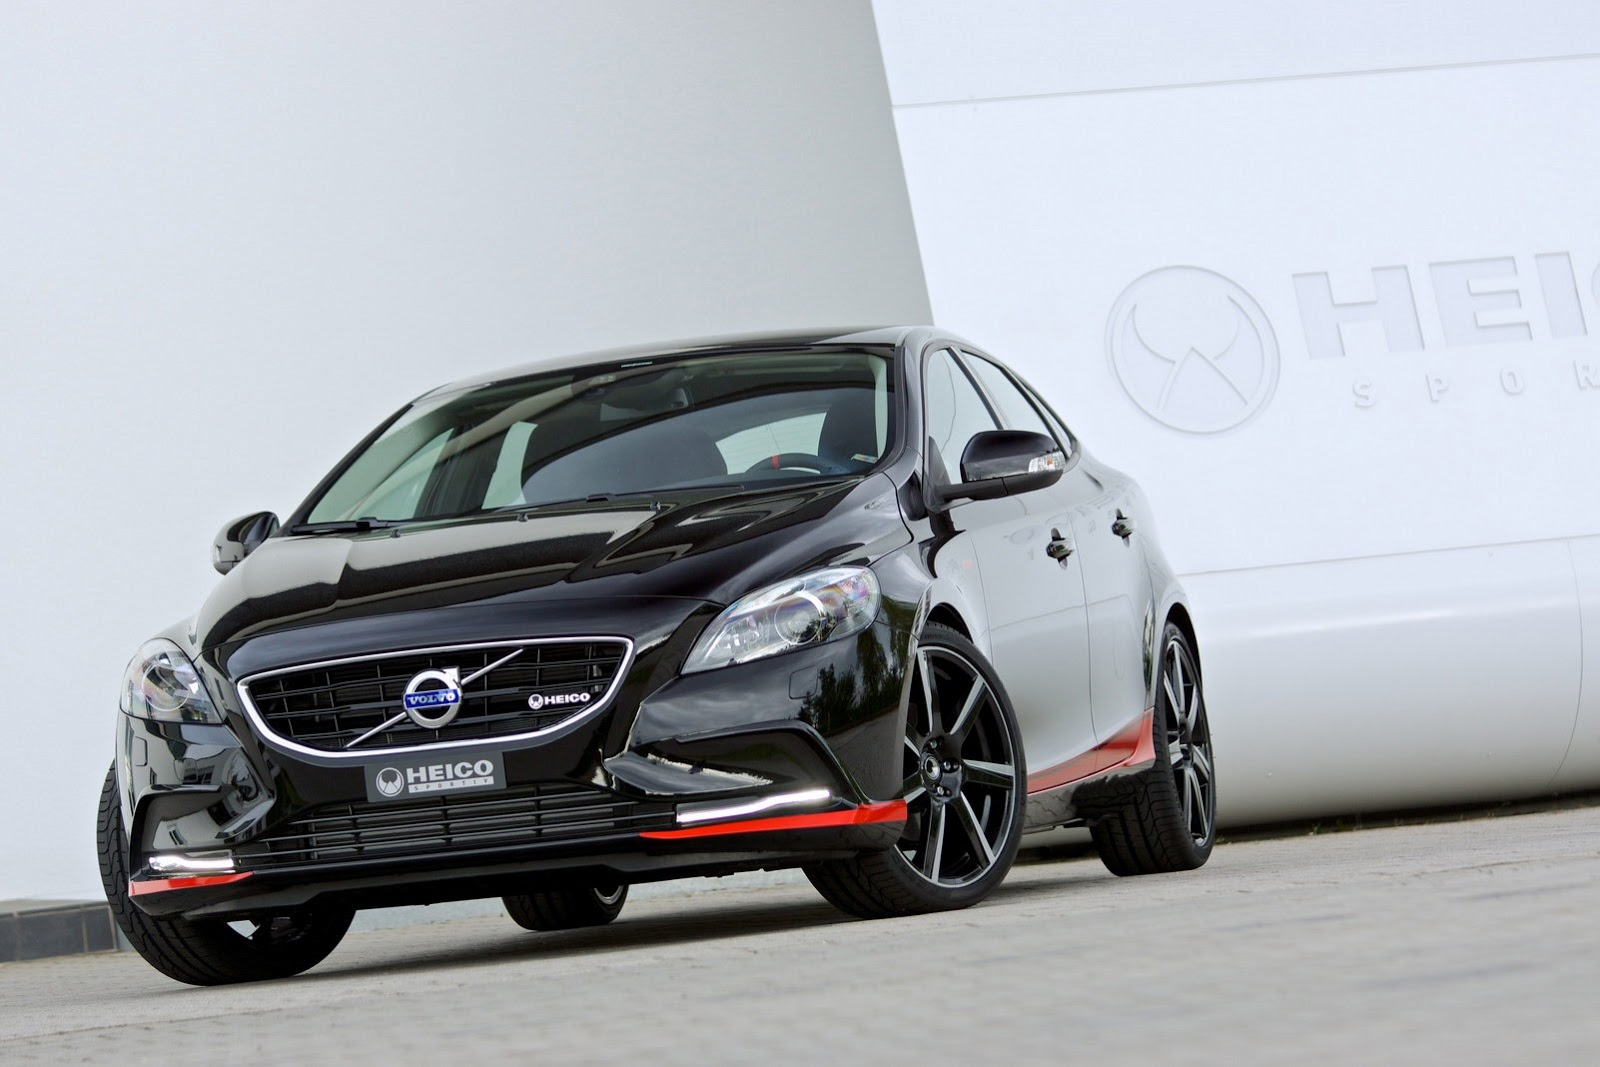 davide458italia volvo v40 pirelli special edition by heico sportiv. Black Bedroom Furniture Sets. Home Design Ideas